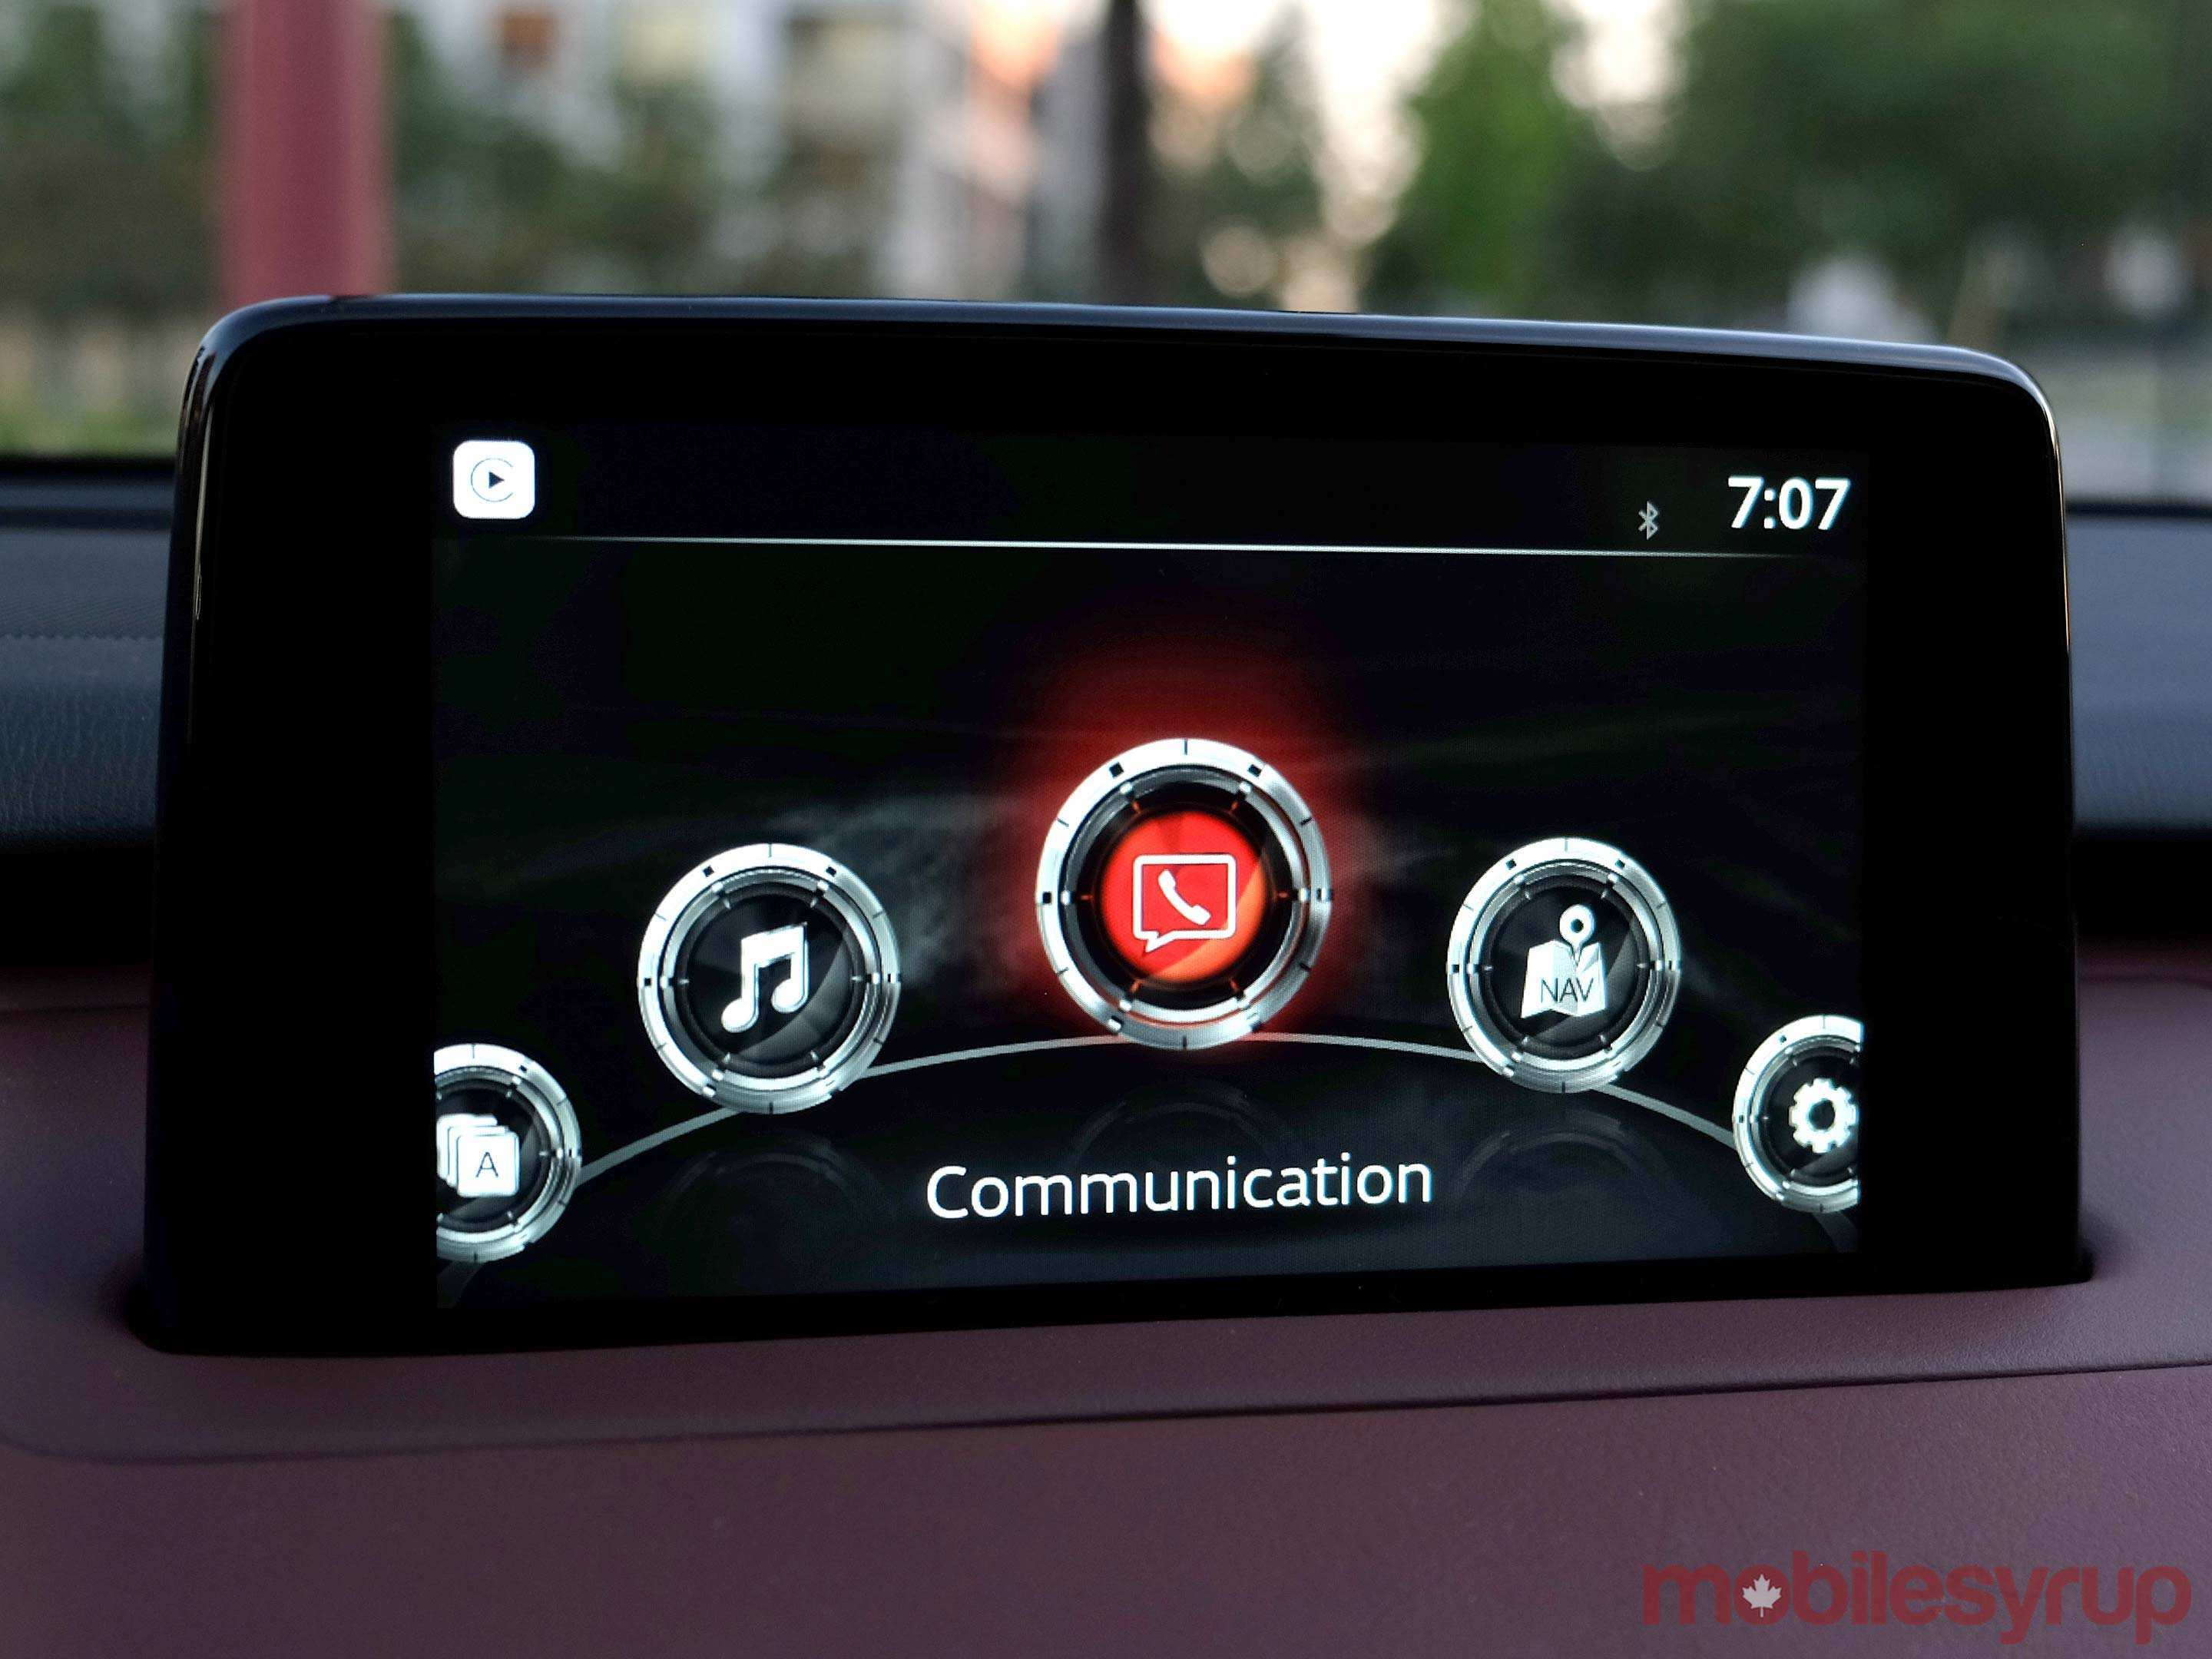 49 Concept of Best Mazda Navigation Sd Card 2019 Price Redesign with Best Mazda Navigation Sd Card 2019 Price